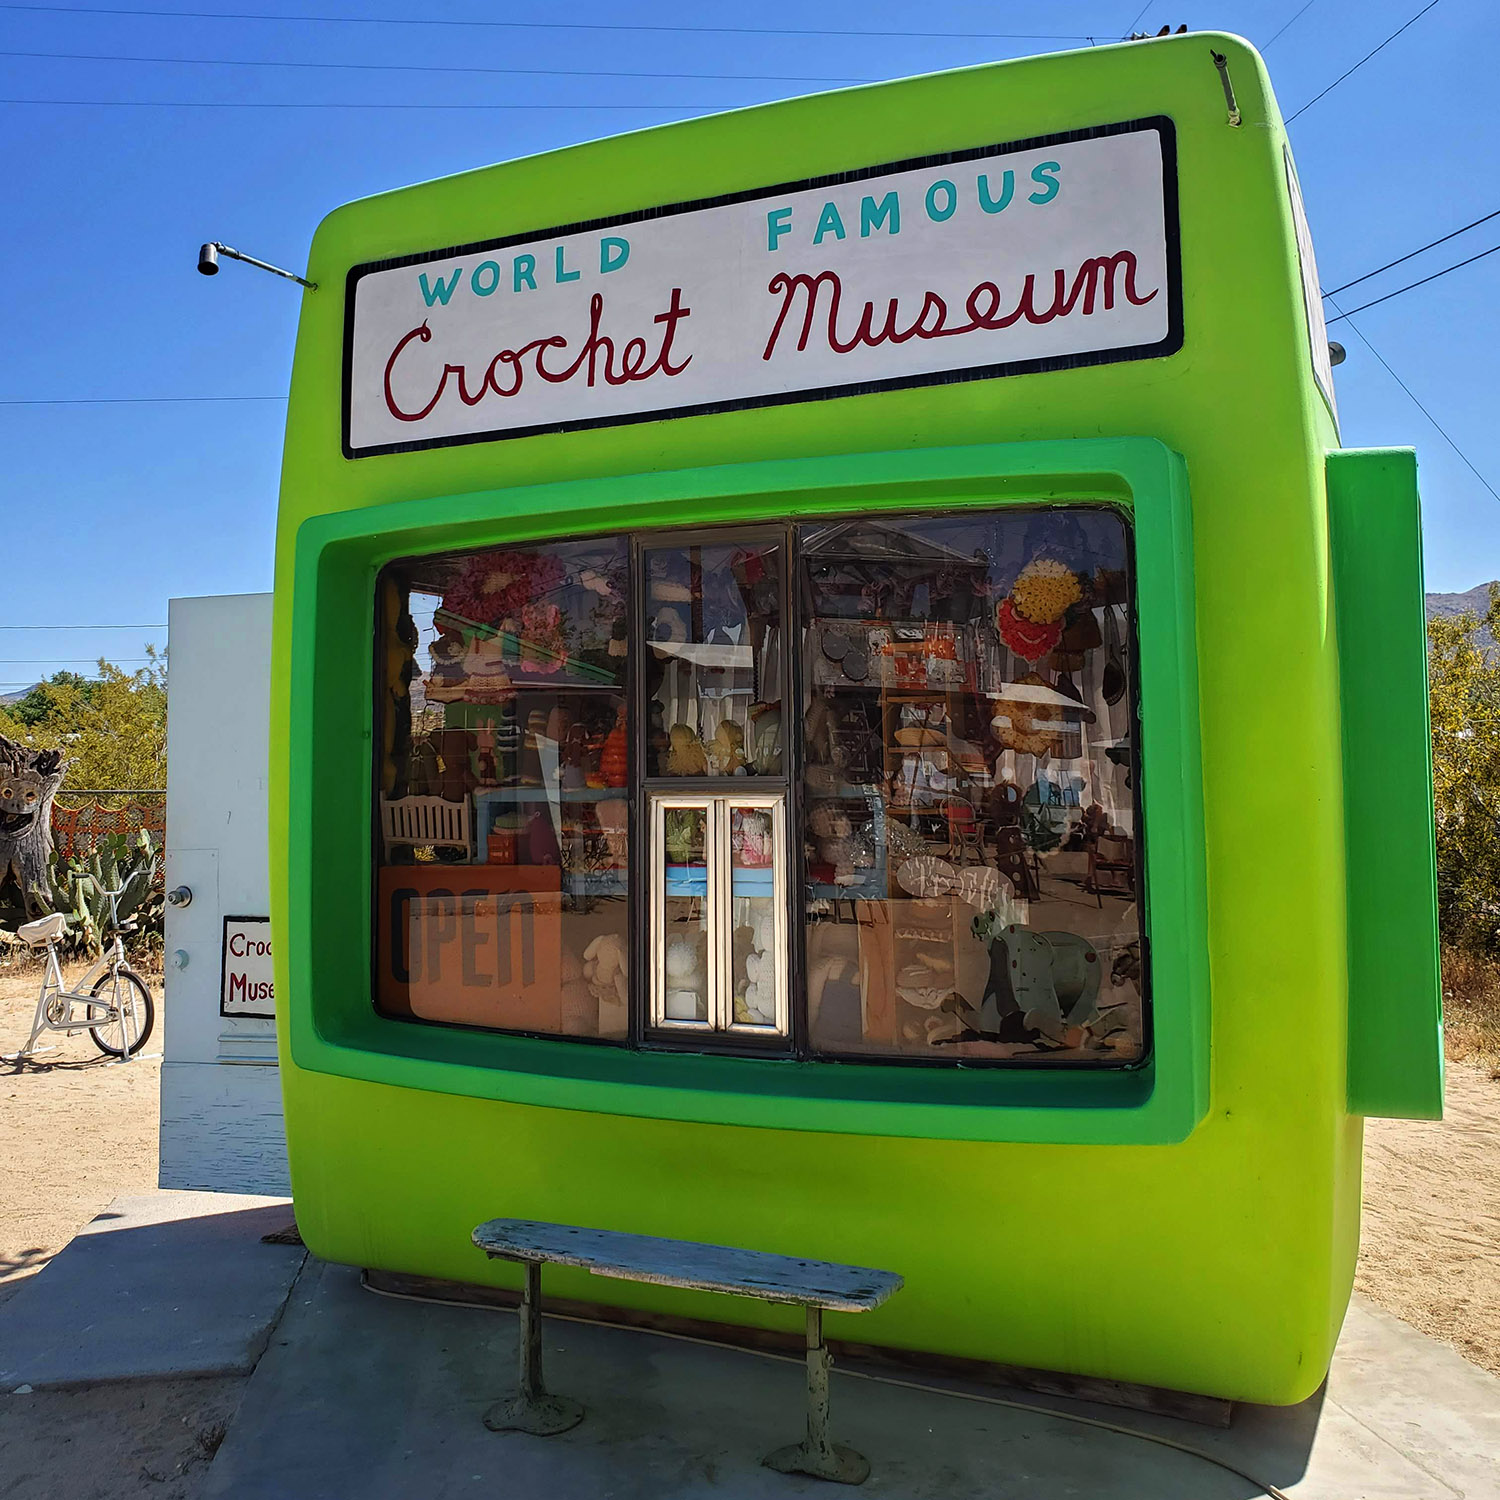 world famous crochet museum joshua tree